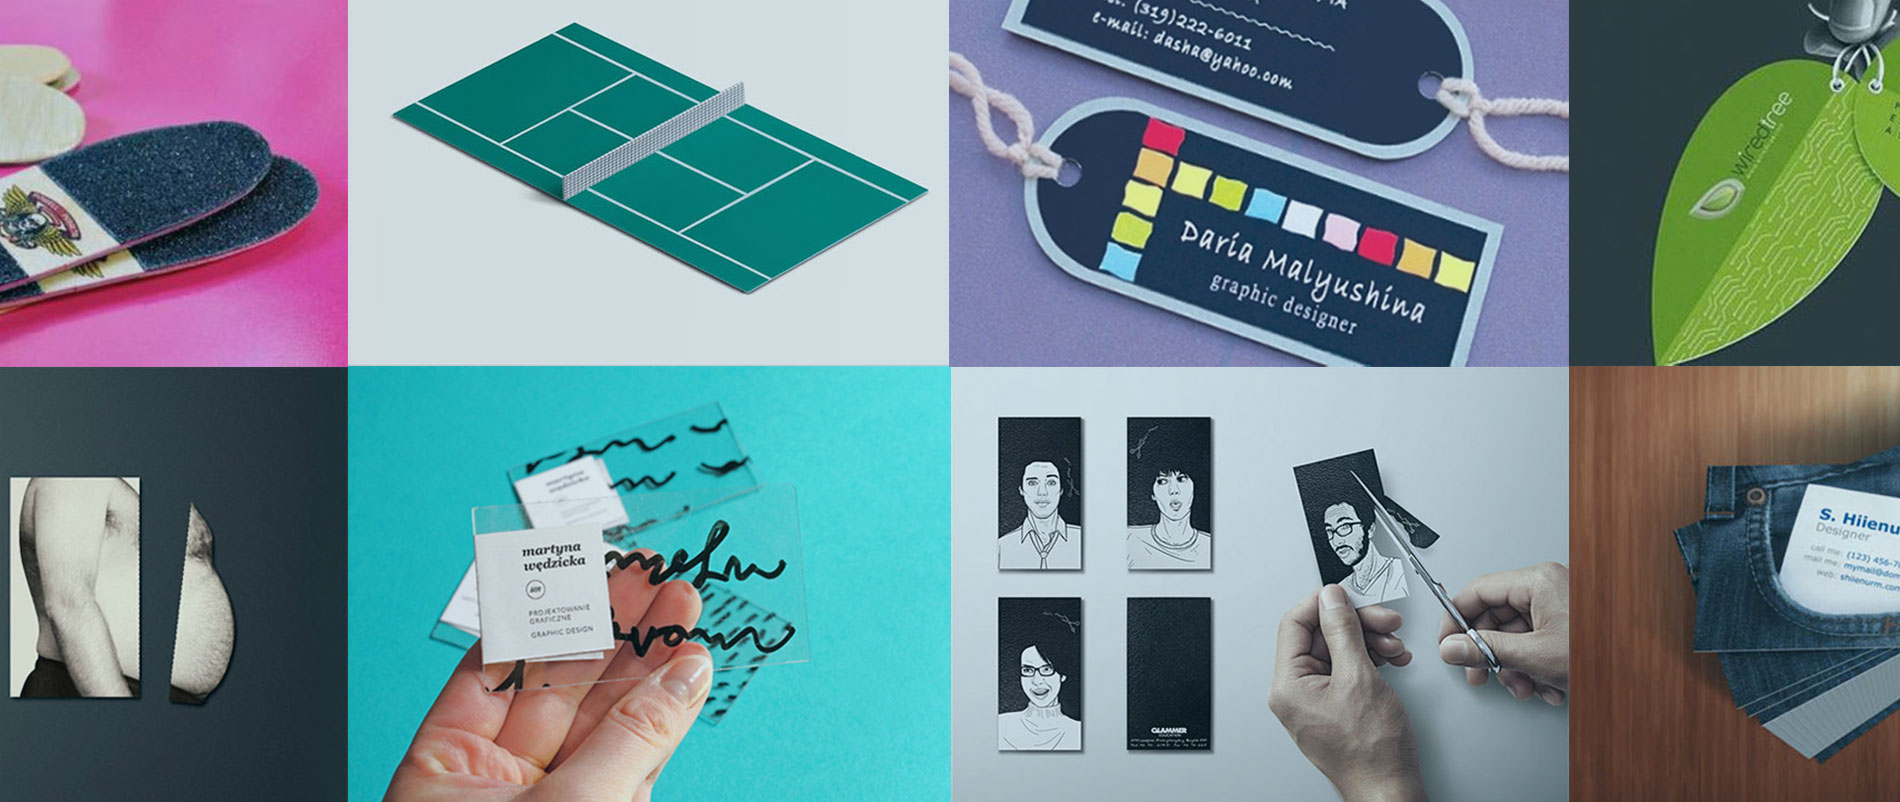 50 business cards that are way too creative to ever throw away web business cards reheart